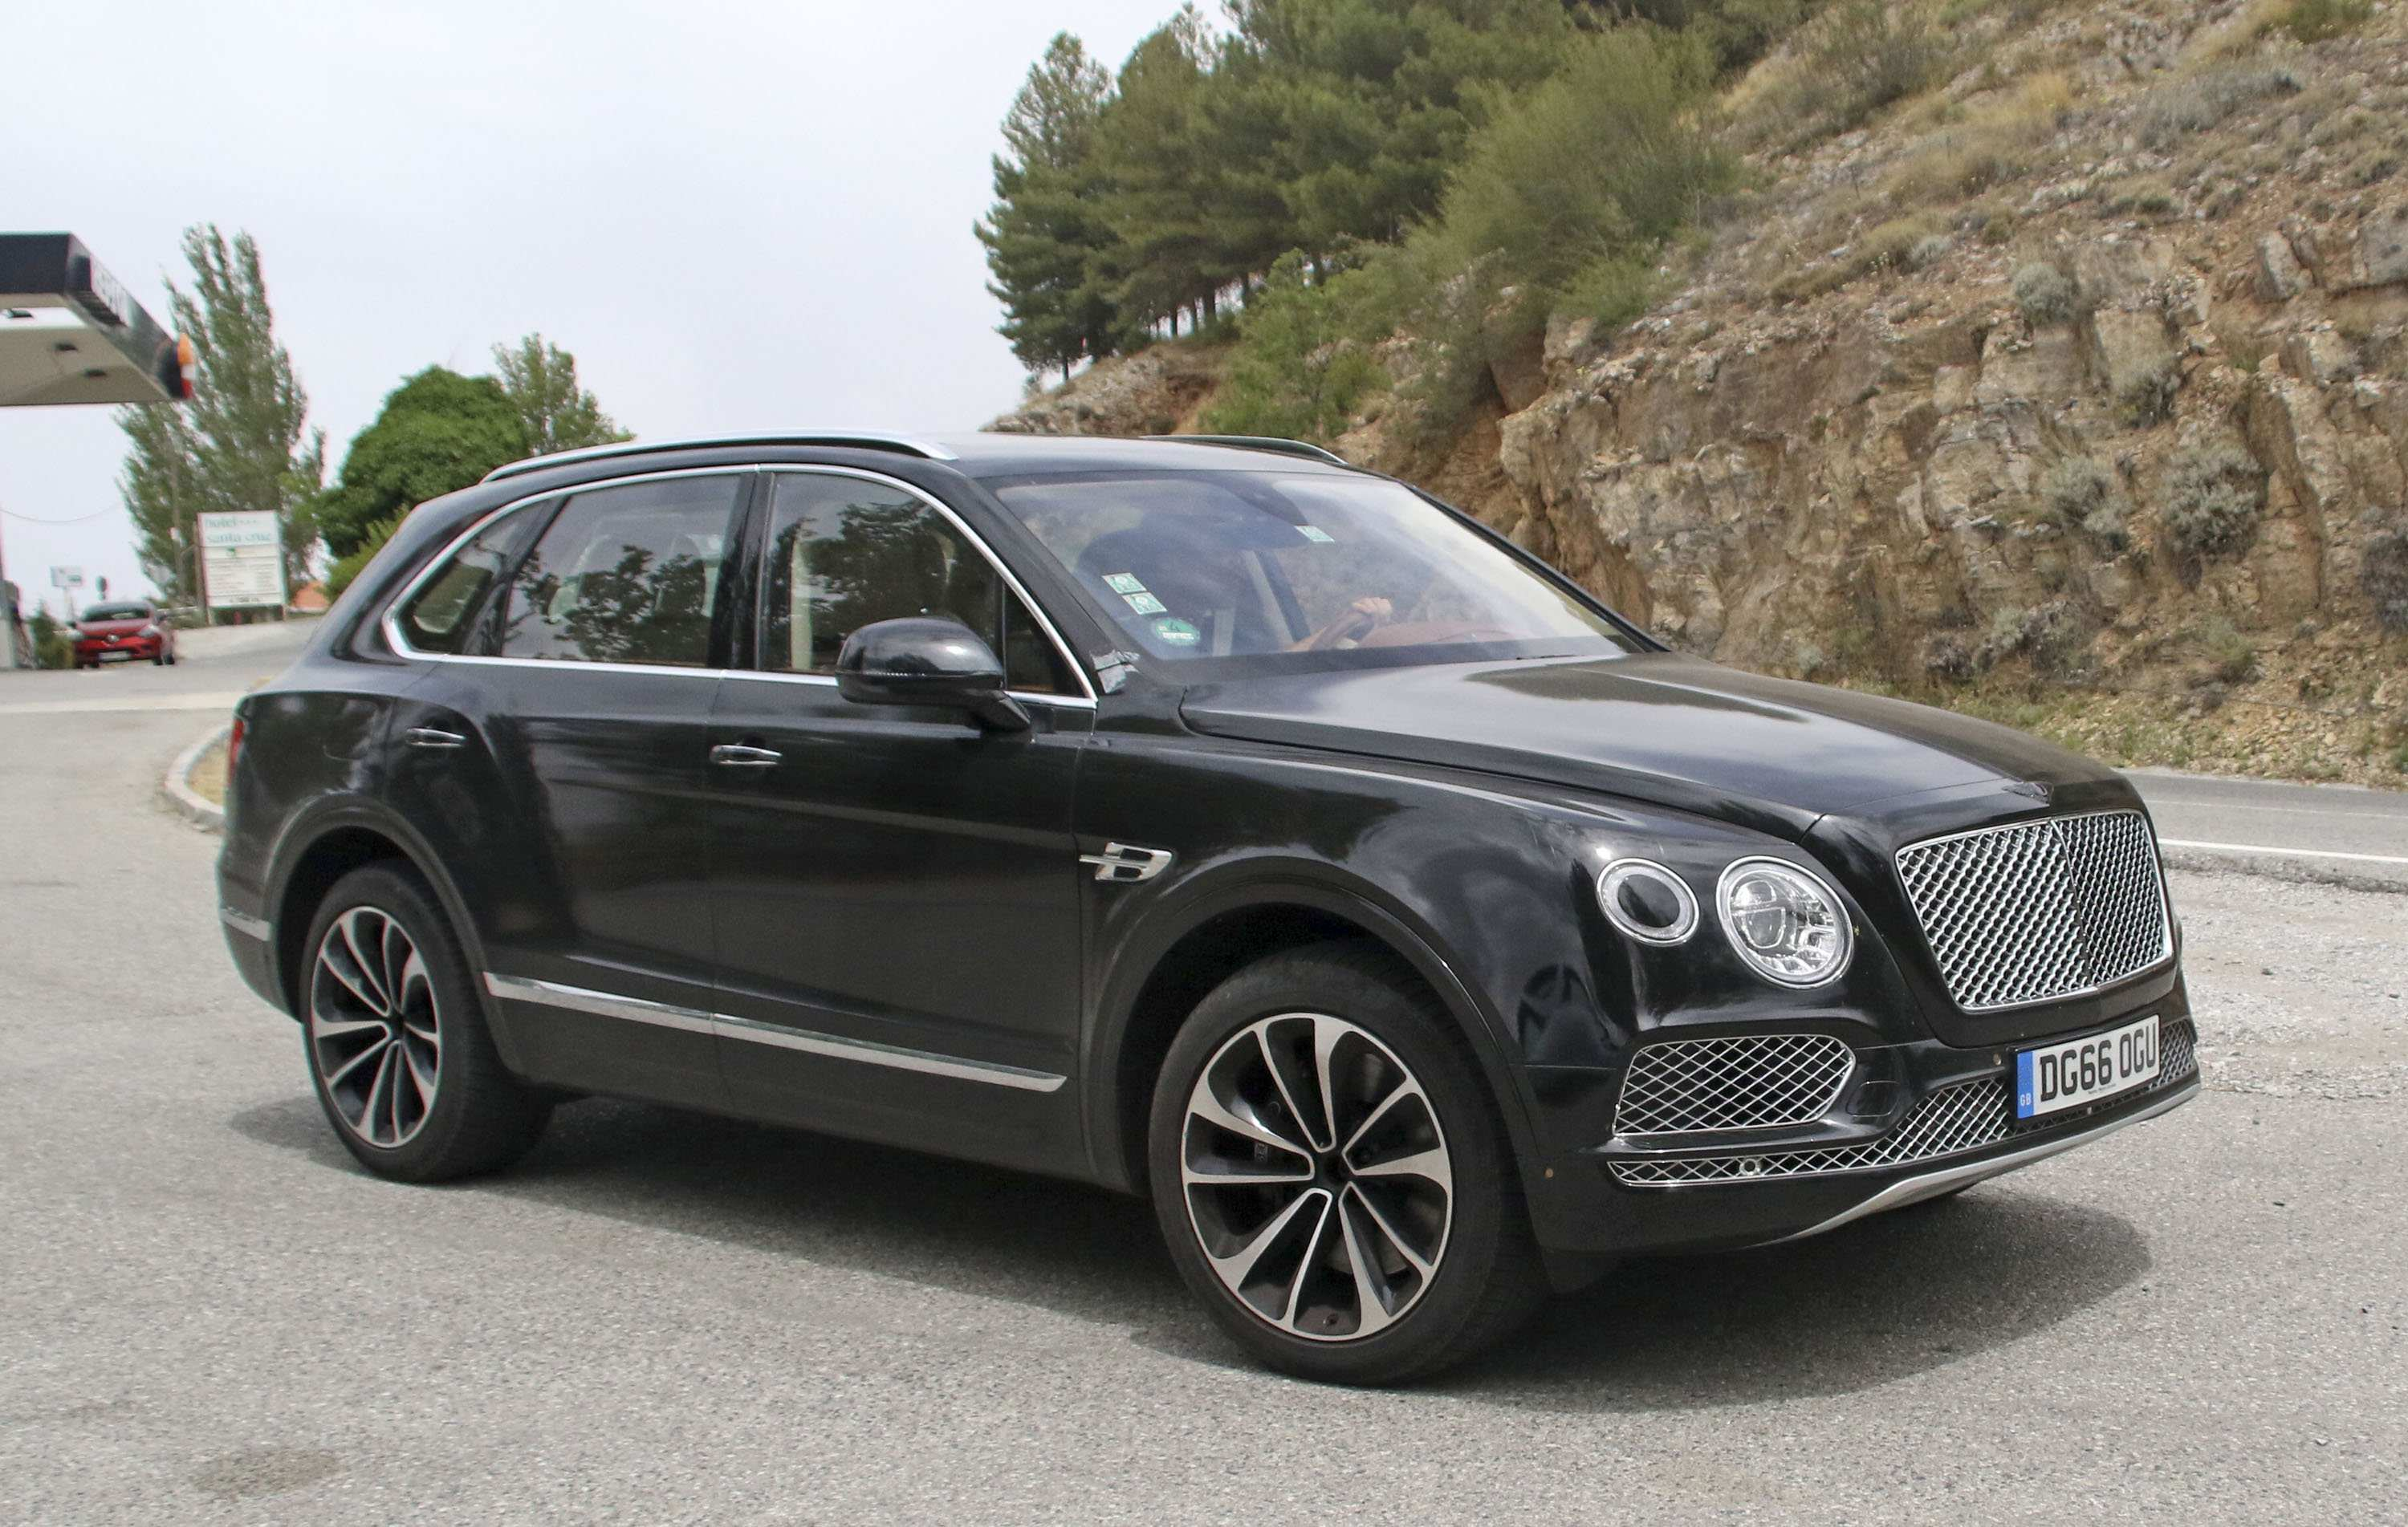 71 All New 2019 Bentley Bentayga V8 Price First Drive for 2019 Bentley Bentayga V8 Price